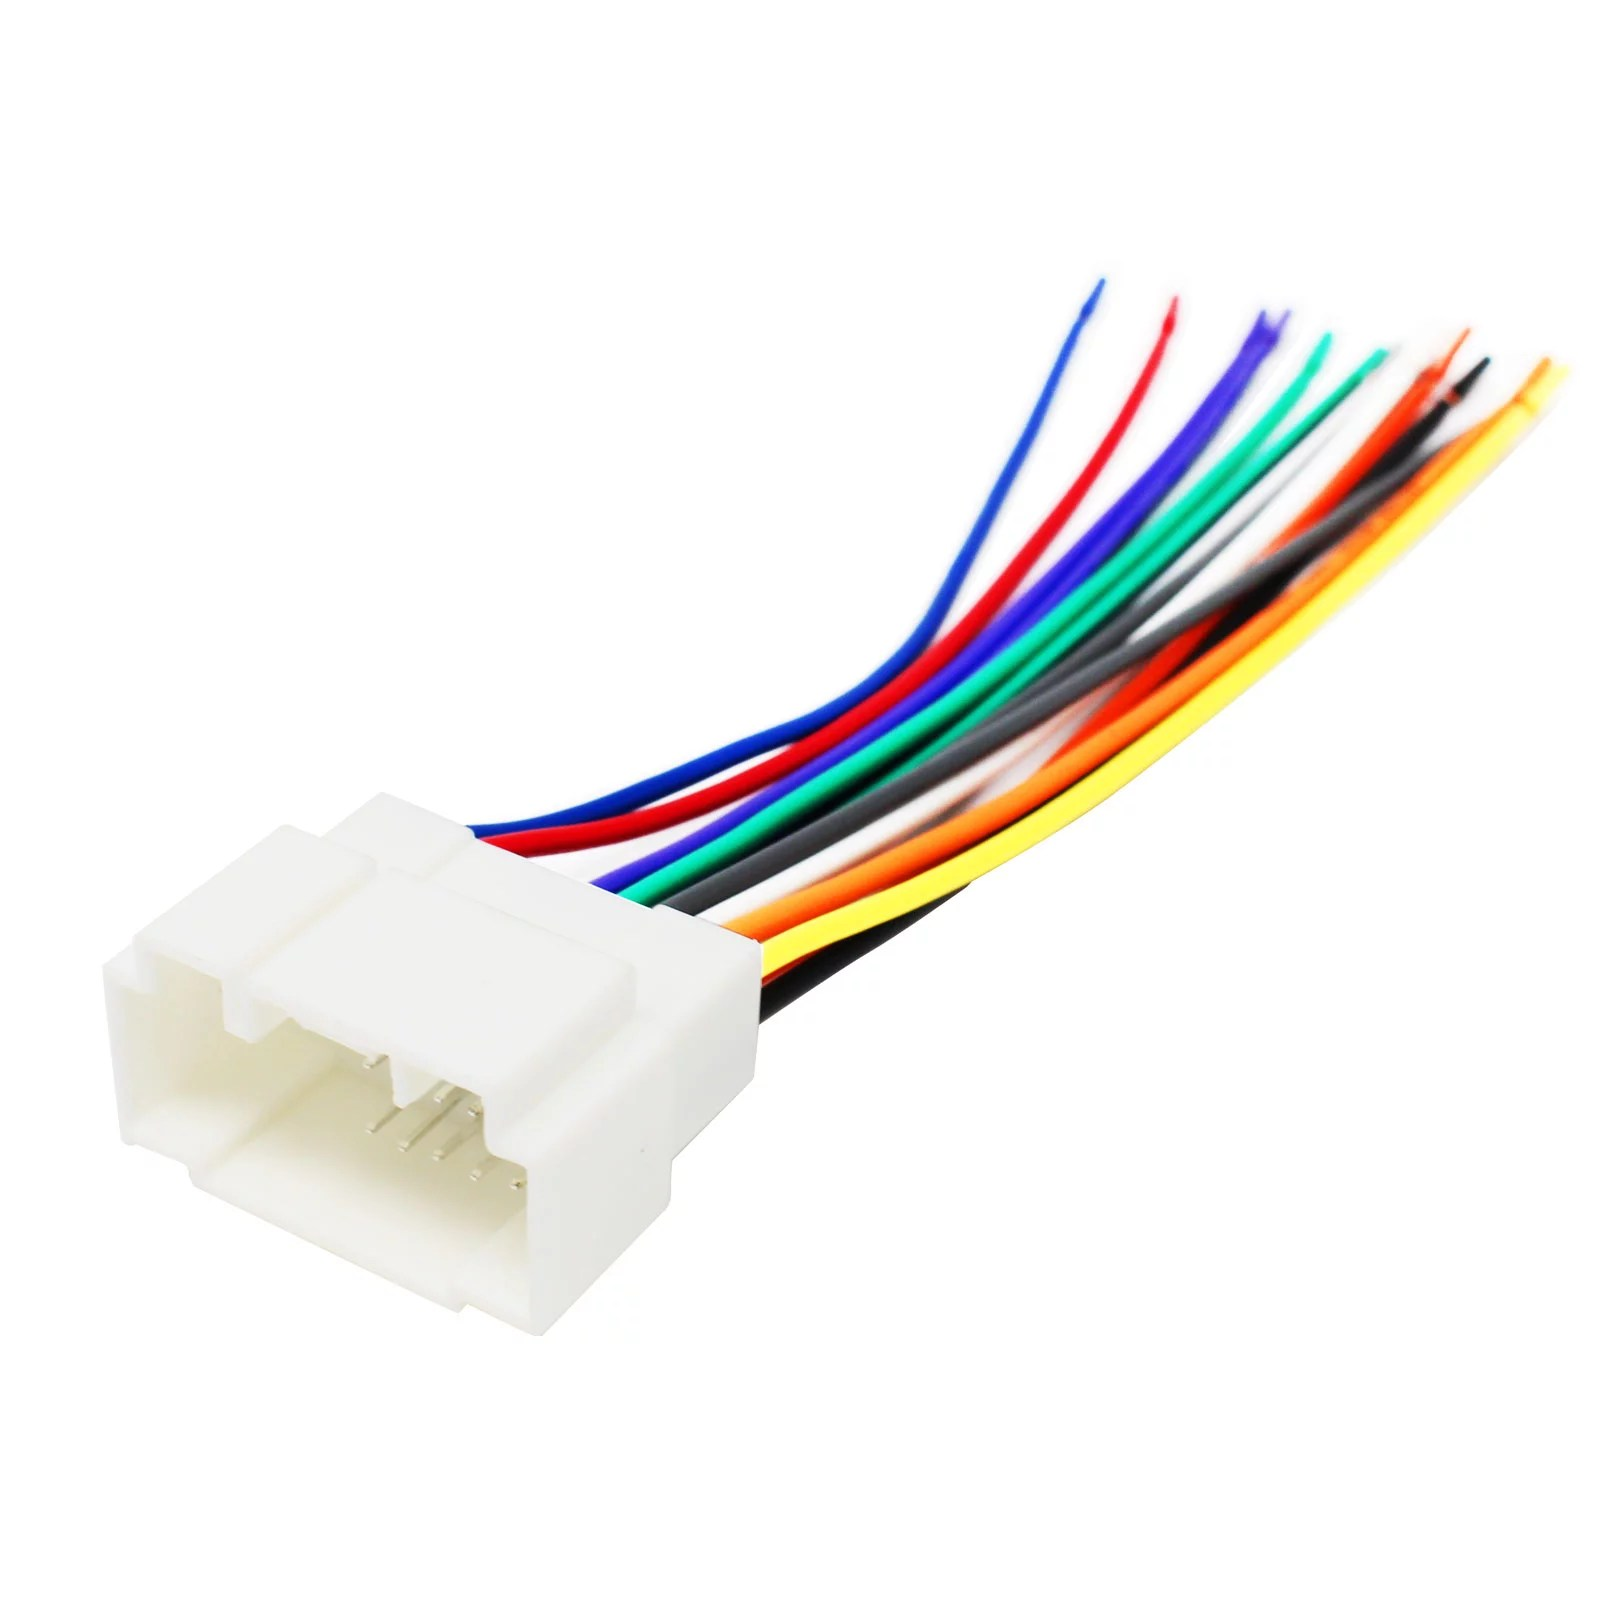 replacement radio wiring harness for 2005 honda civic lx sedan 4 honda rebel wiring harness honda wiring harness [ 1600 x 1600 Pixel ]